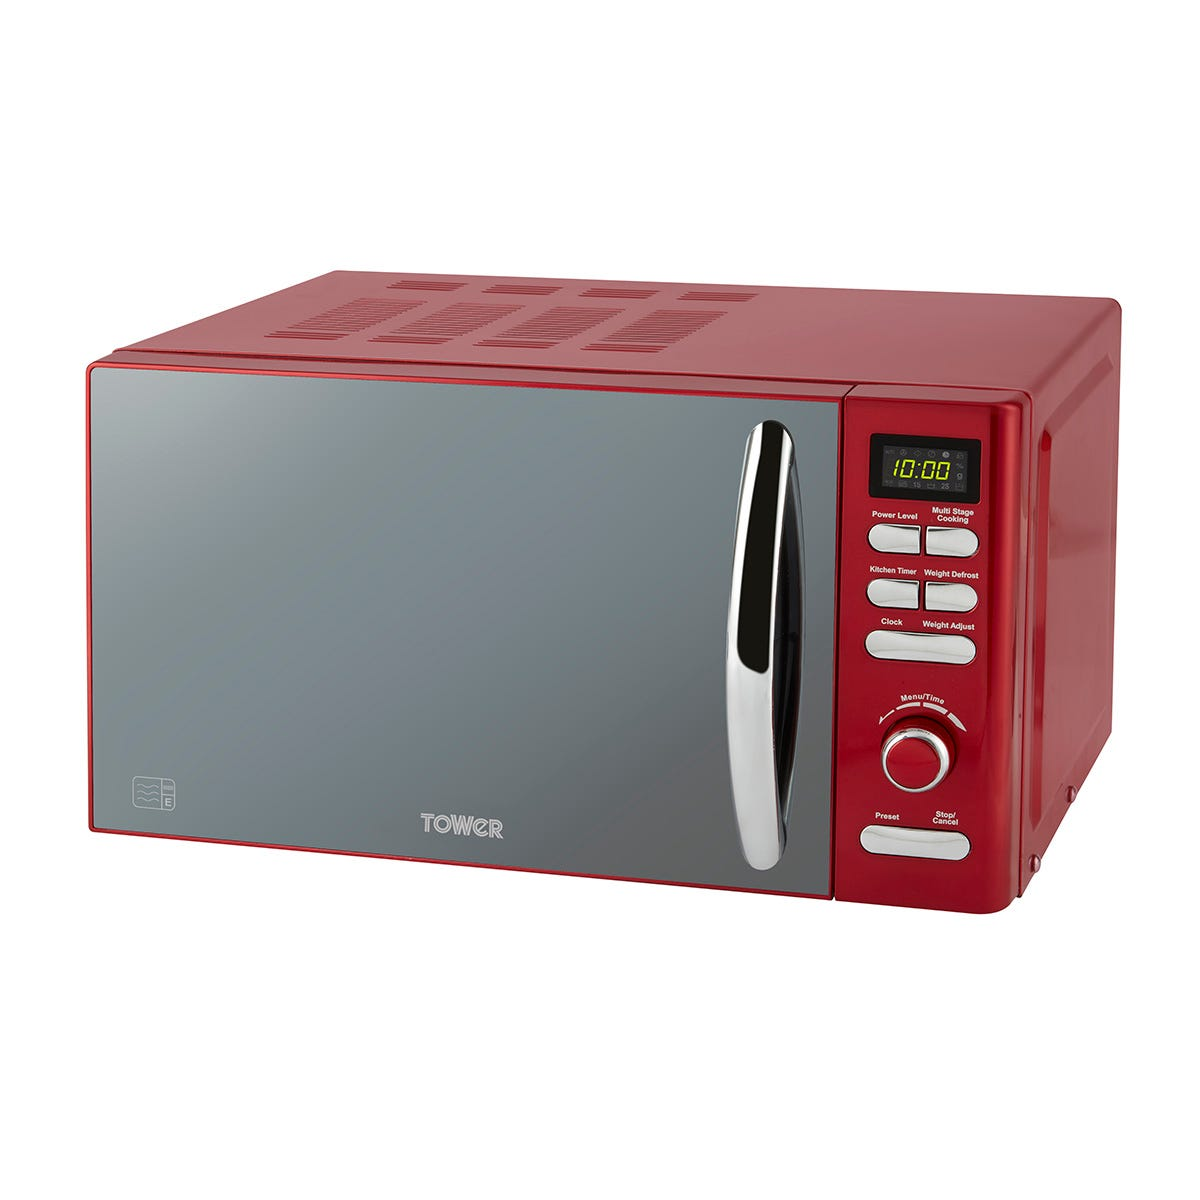 Tower T24019R Infinity 800W 20L Digital Microwave - Red